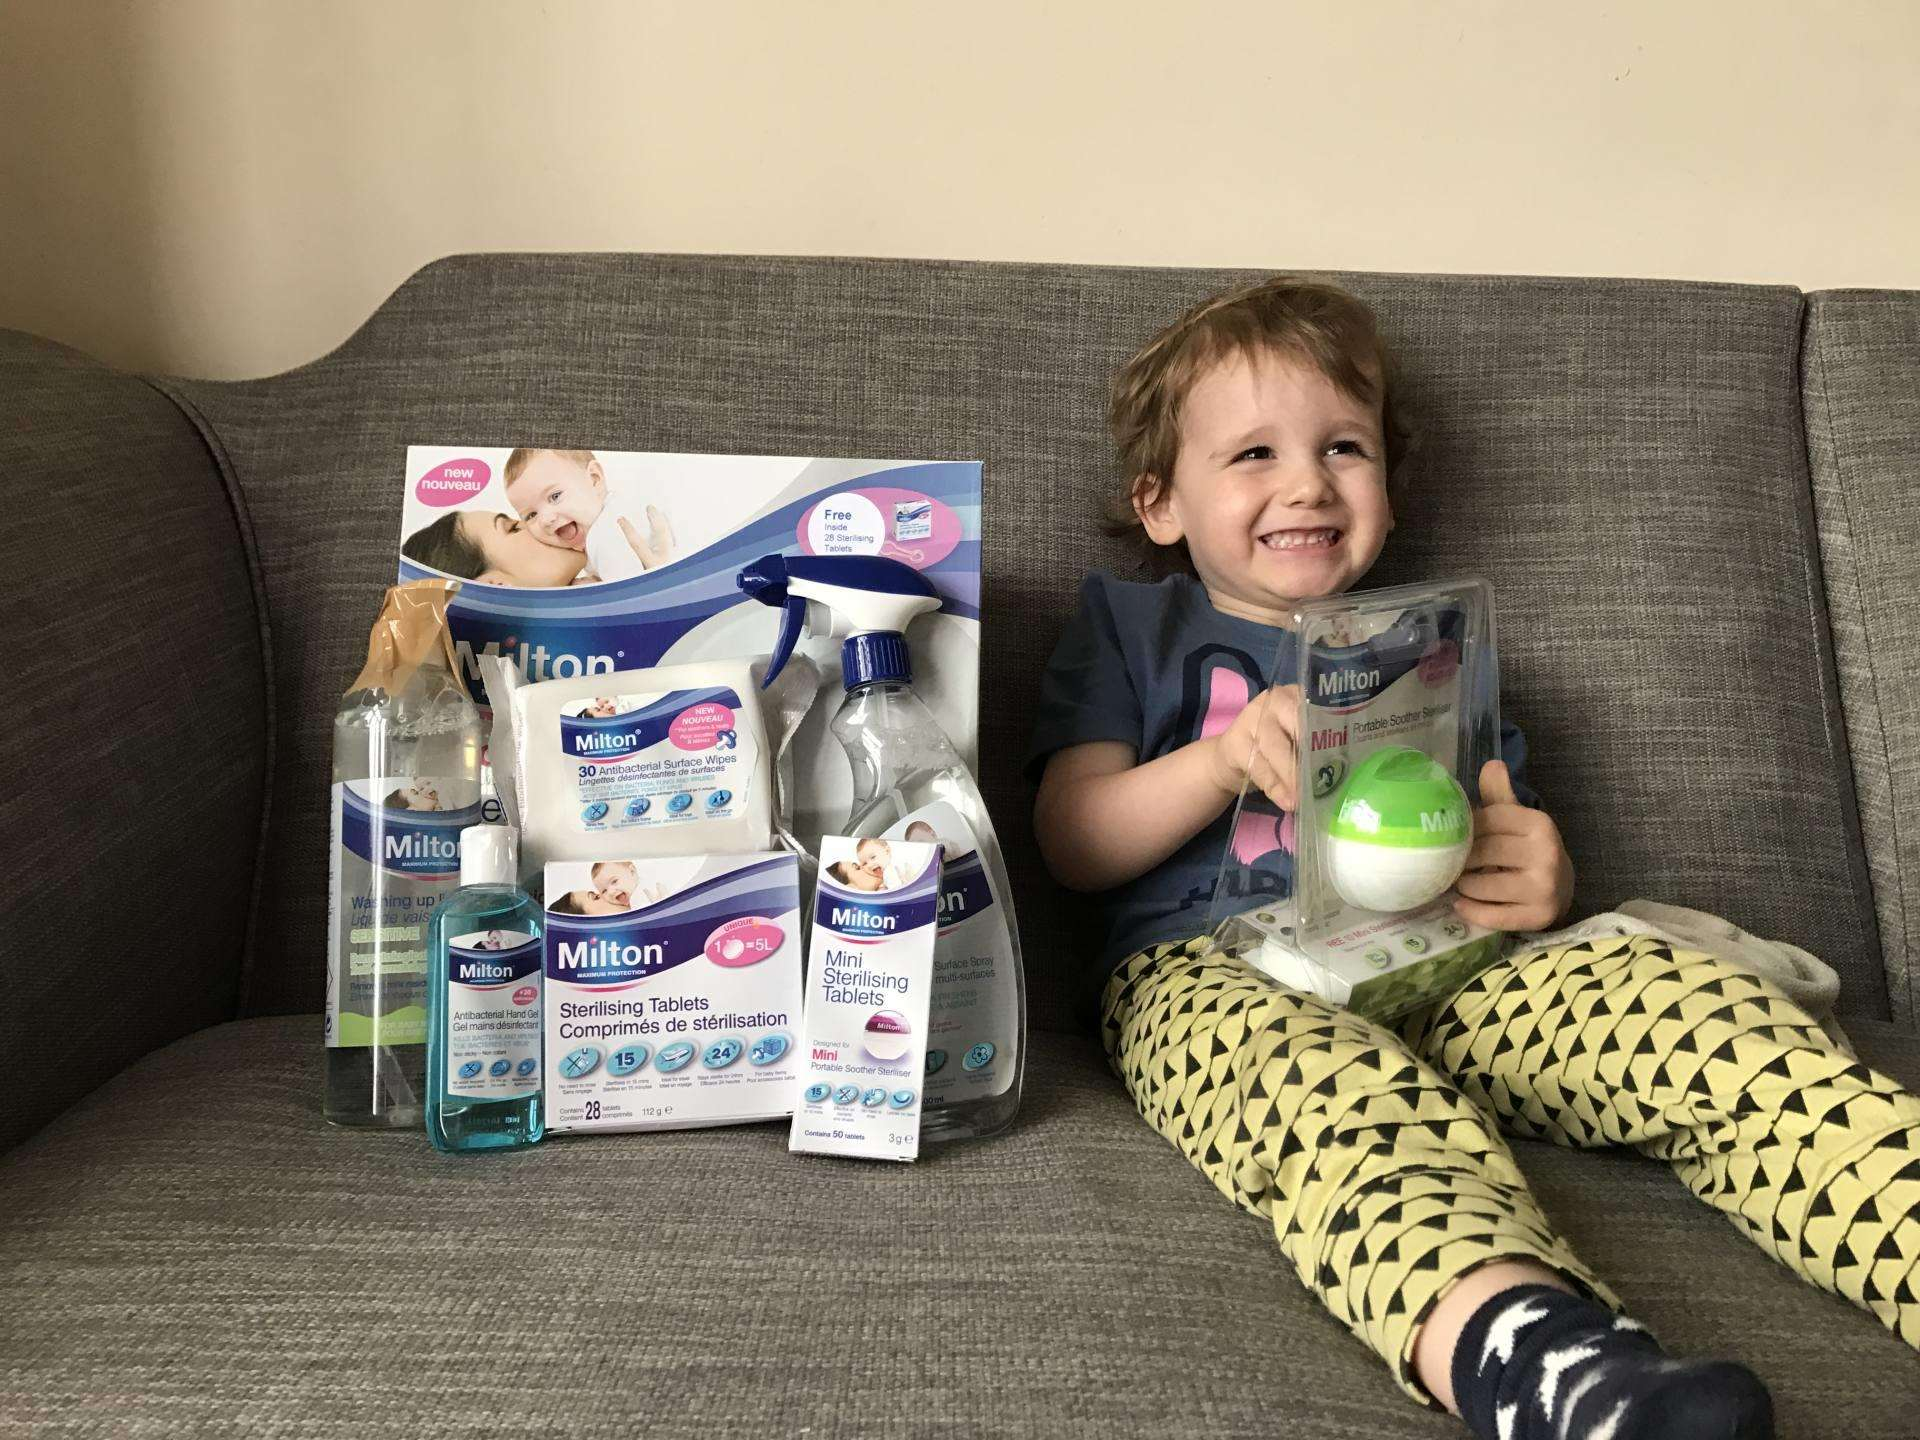 8 top tips to keep your baby's home clean, IMG 3485%, new-dad, lifestyle%